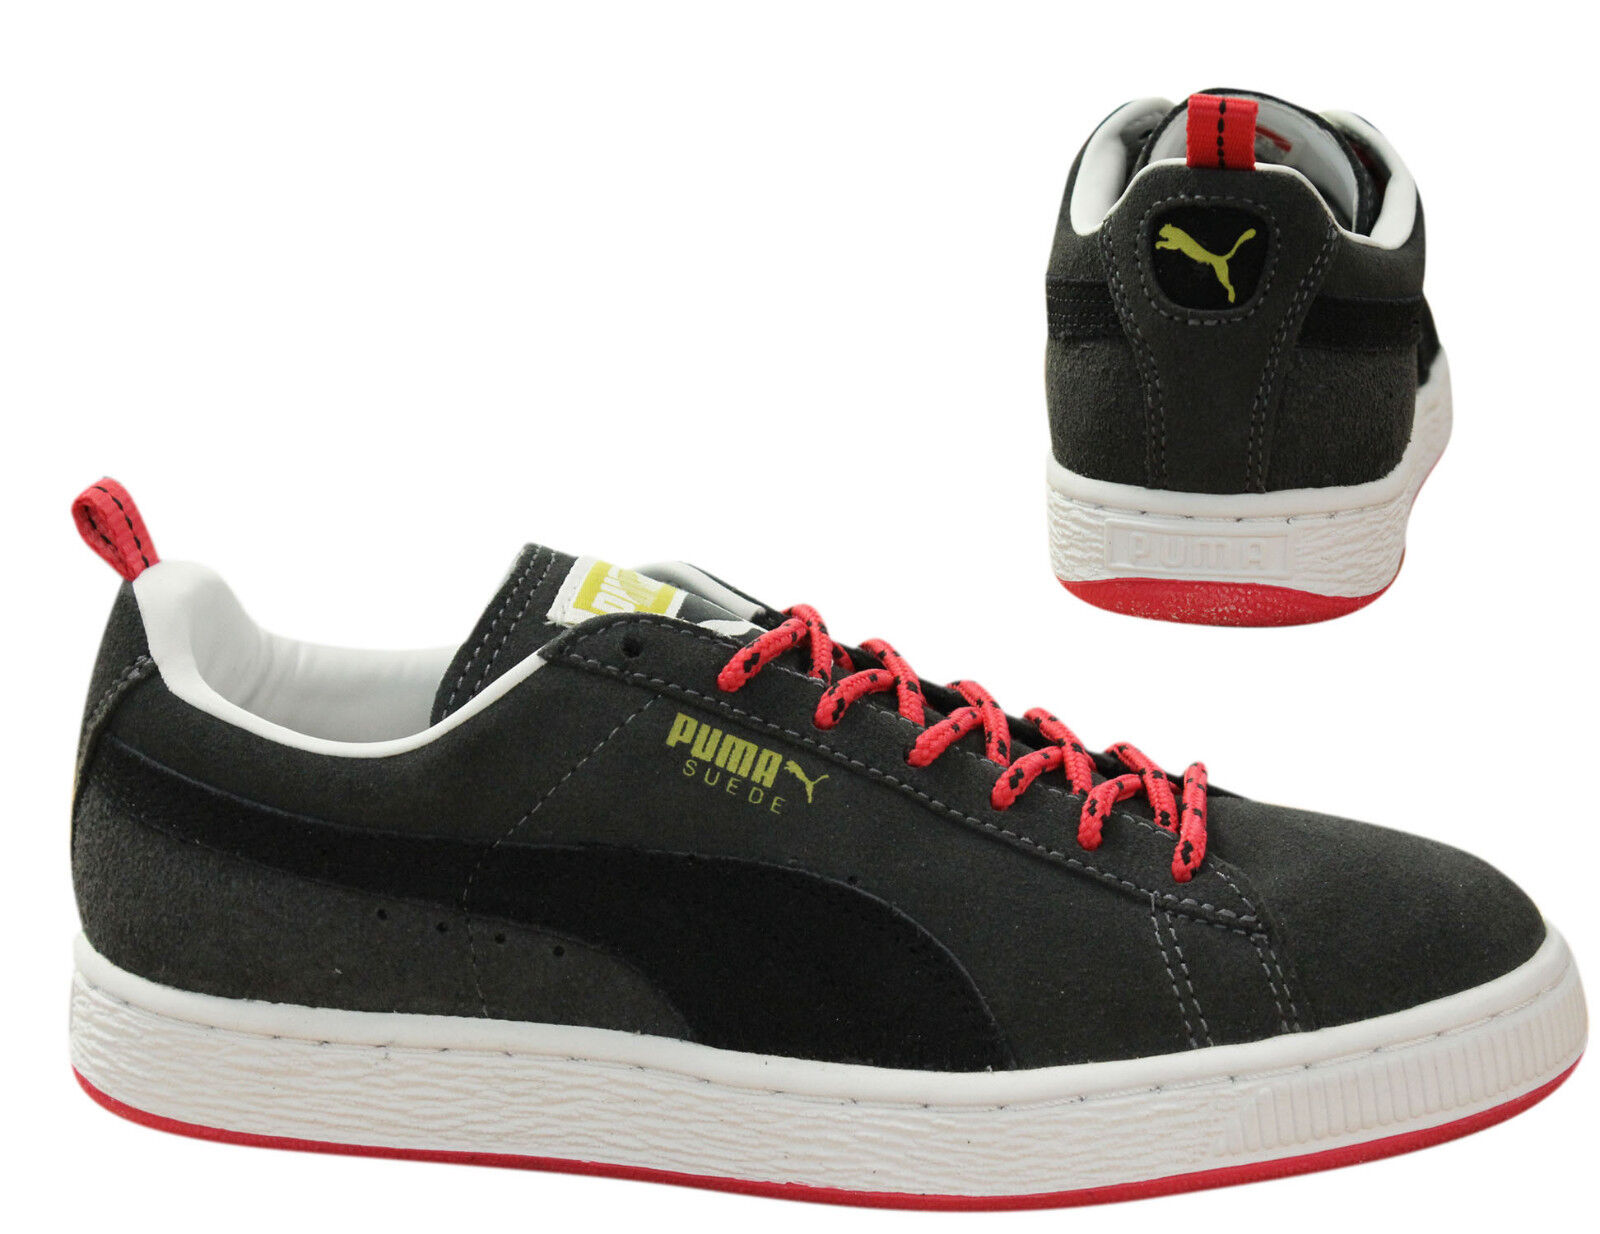 Details about Puma Suede Classic Eco Trail Lace Up Mens Trainers Dark Shadow 354353 02 P3D